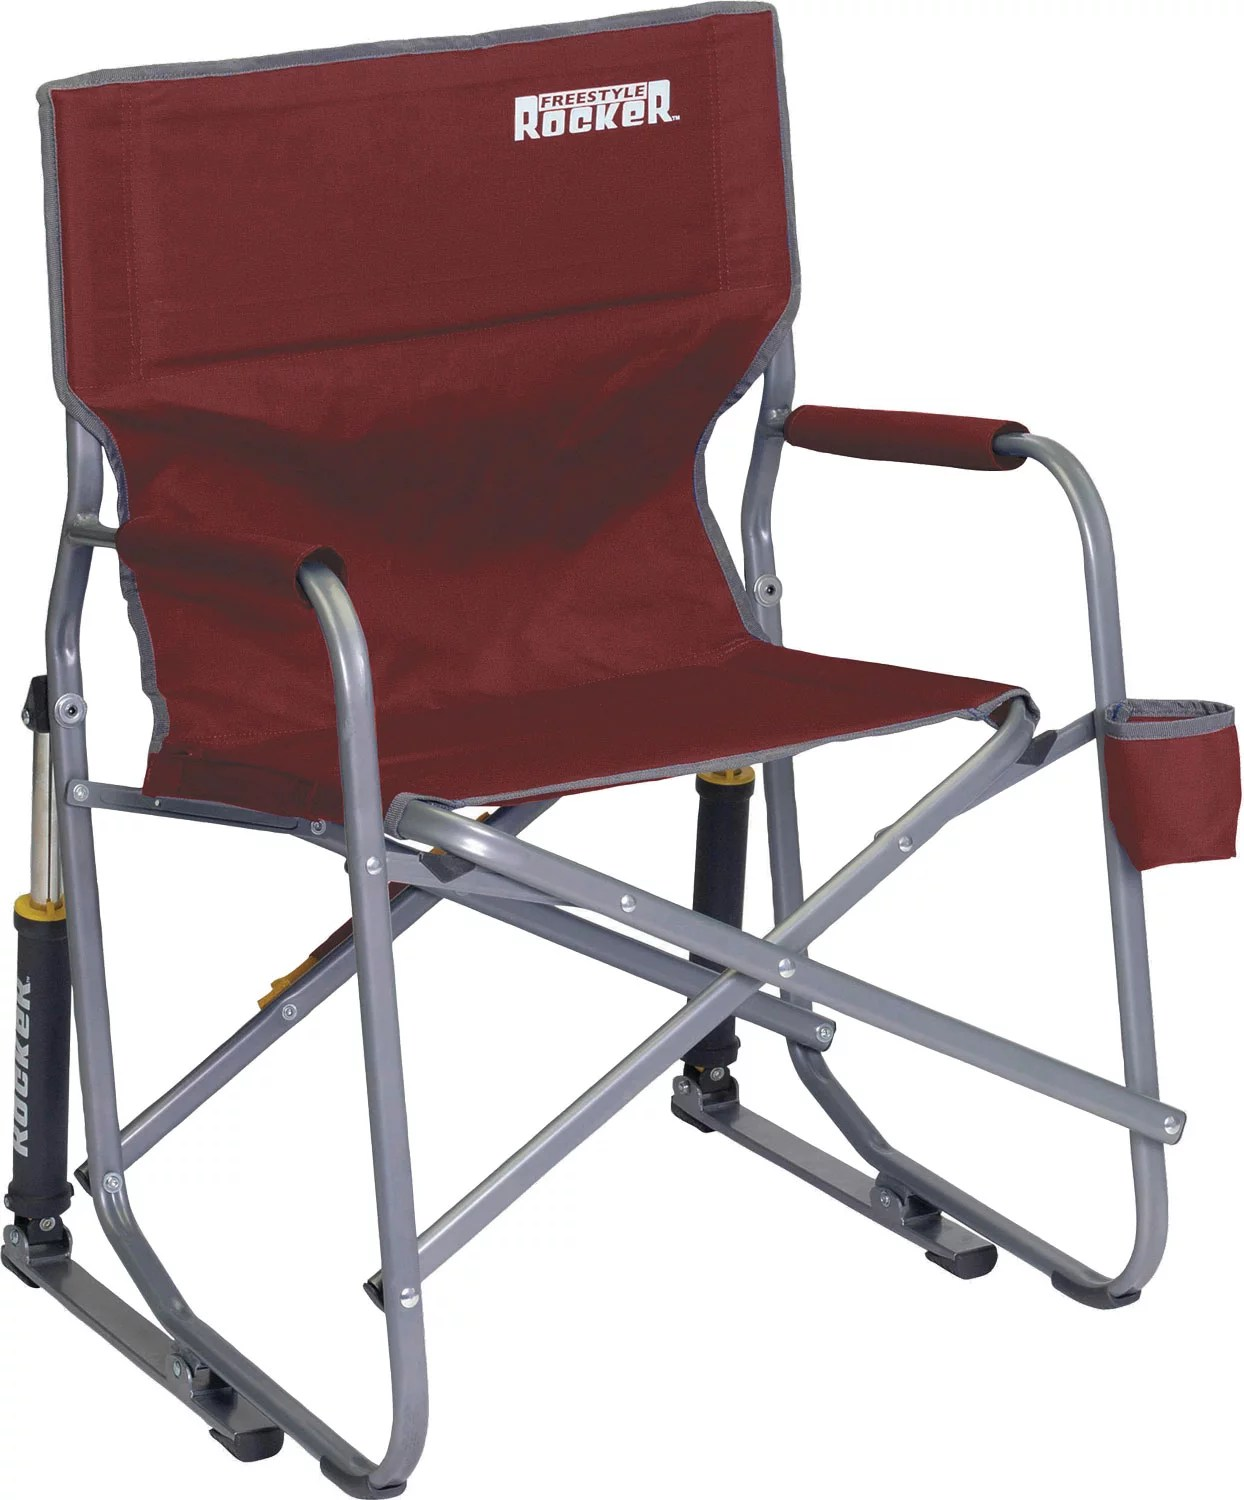 ice fishing lawn chair small desk without arms gci outdoor freestyle rocker dick s sporting goods noimagefound